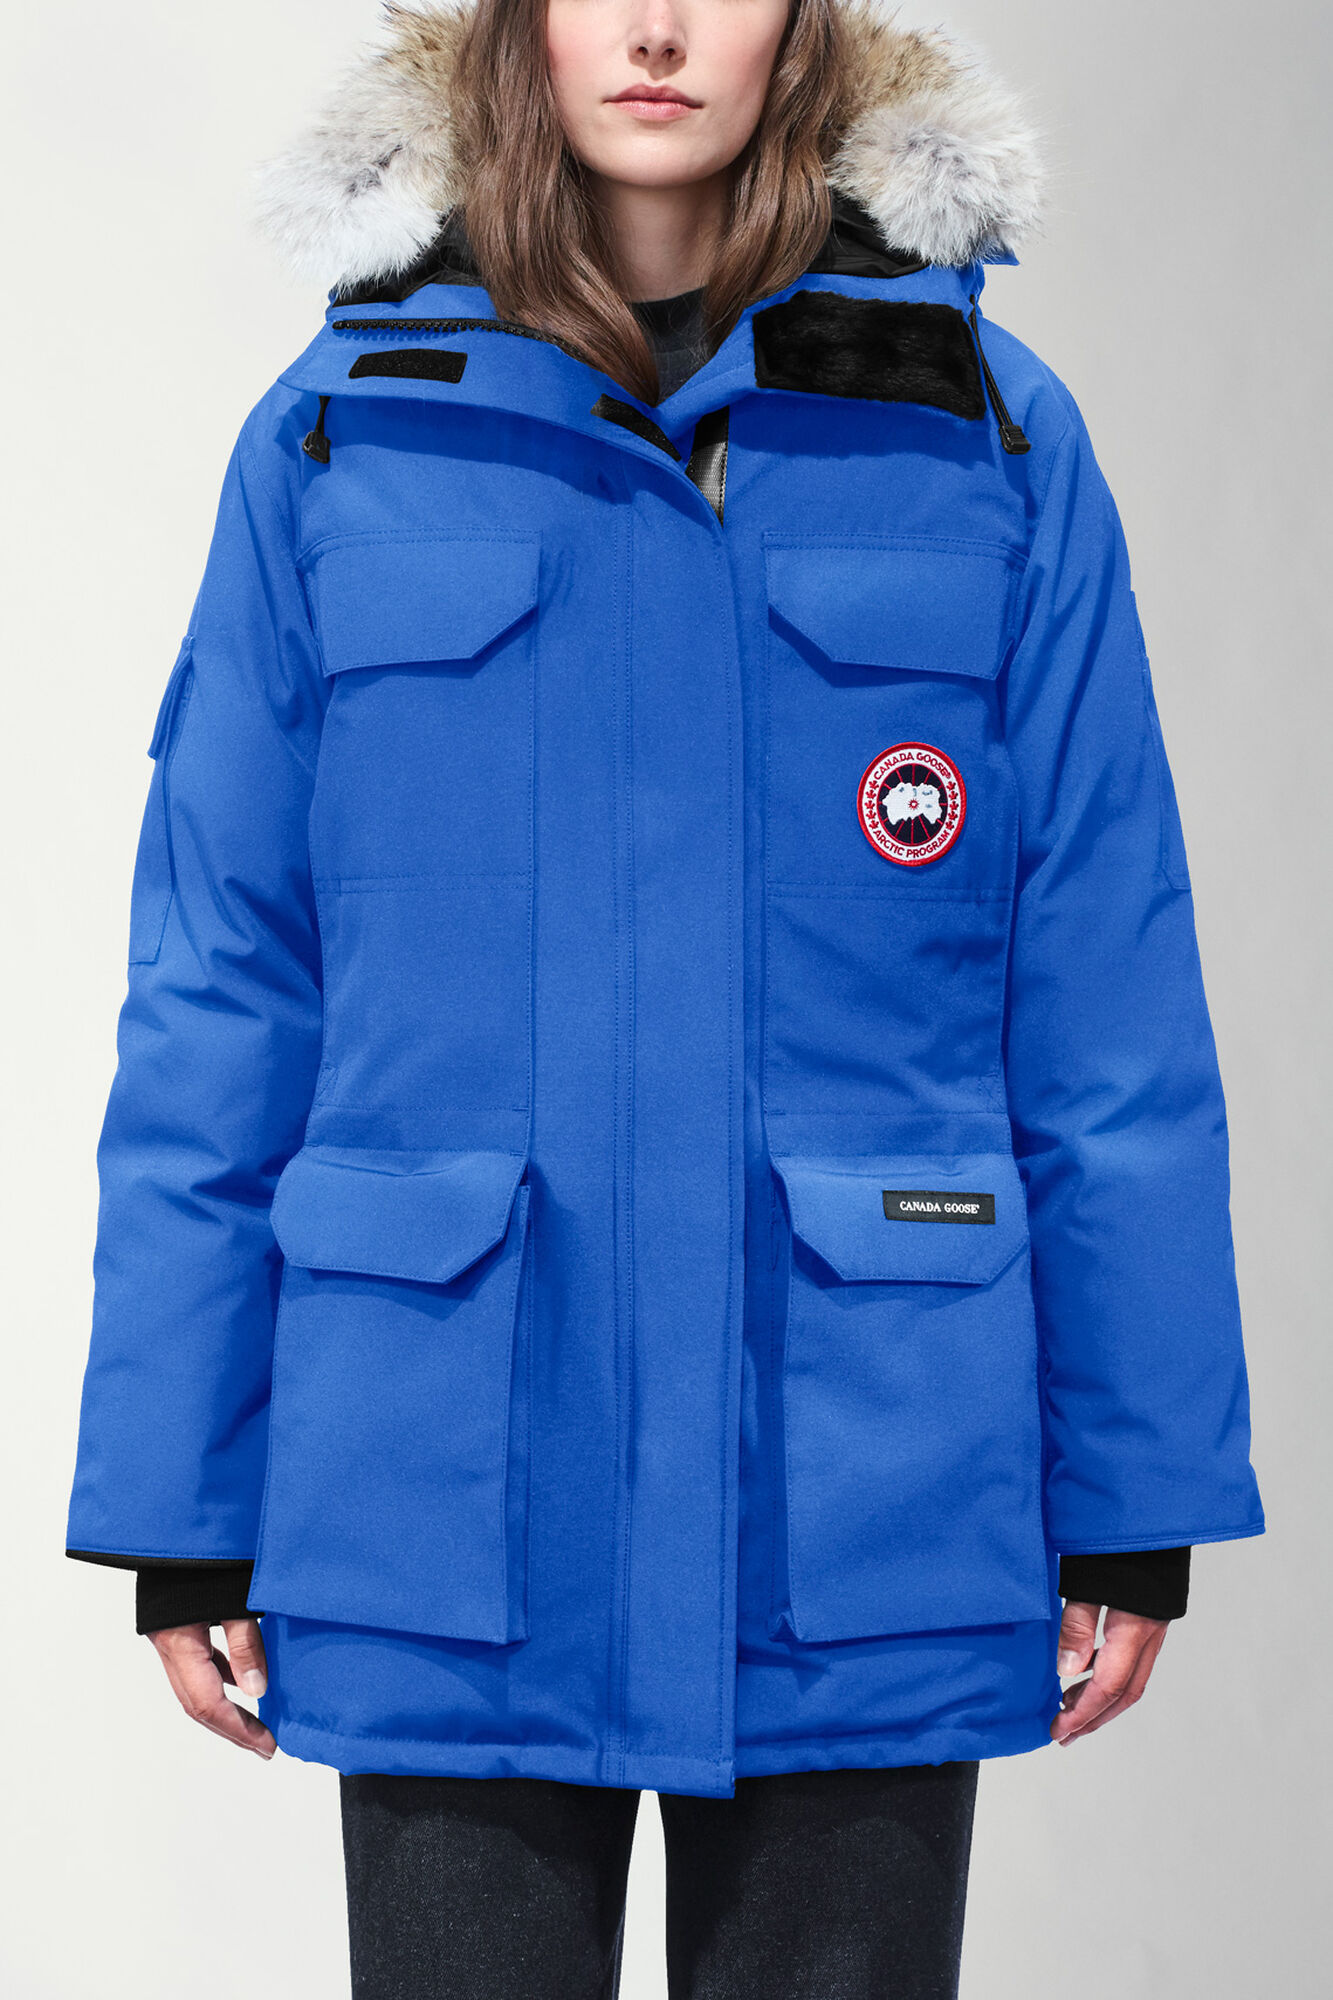 Canada Goose jackets sale authentic - Women's Polar Bears International PBI Chilliwack Bomber | Canada ...